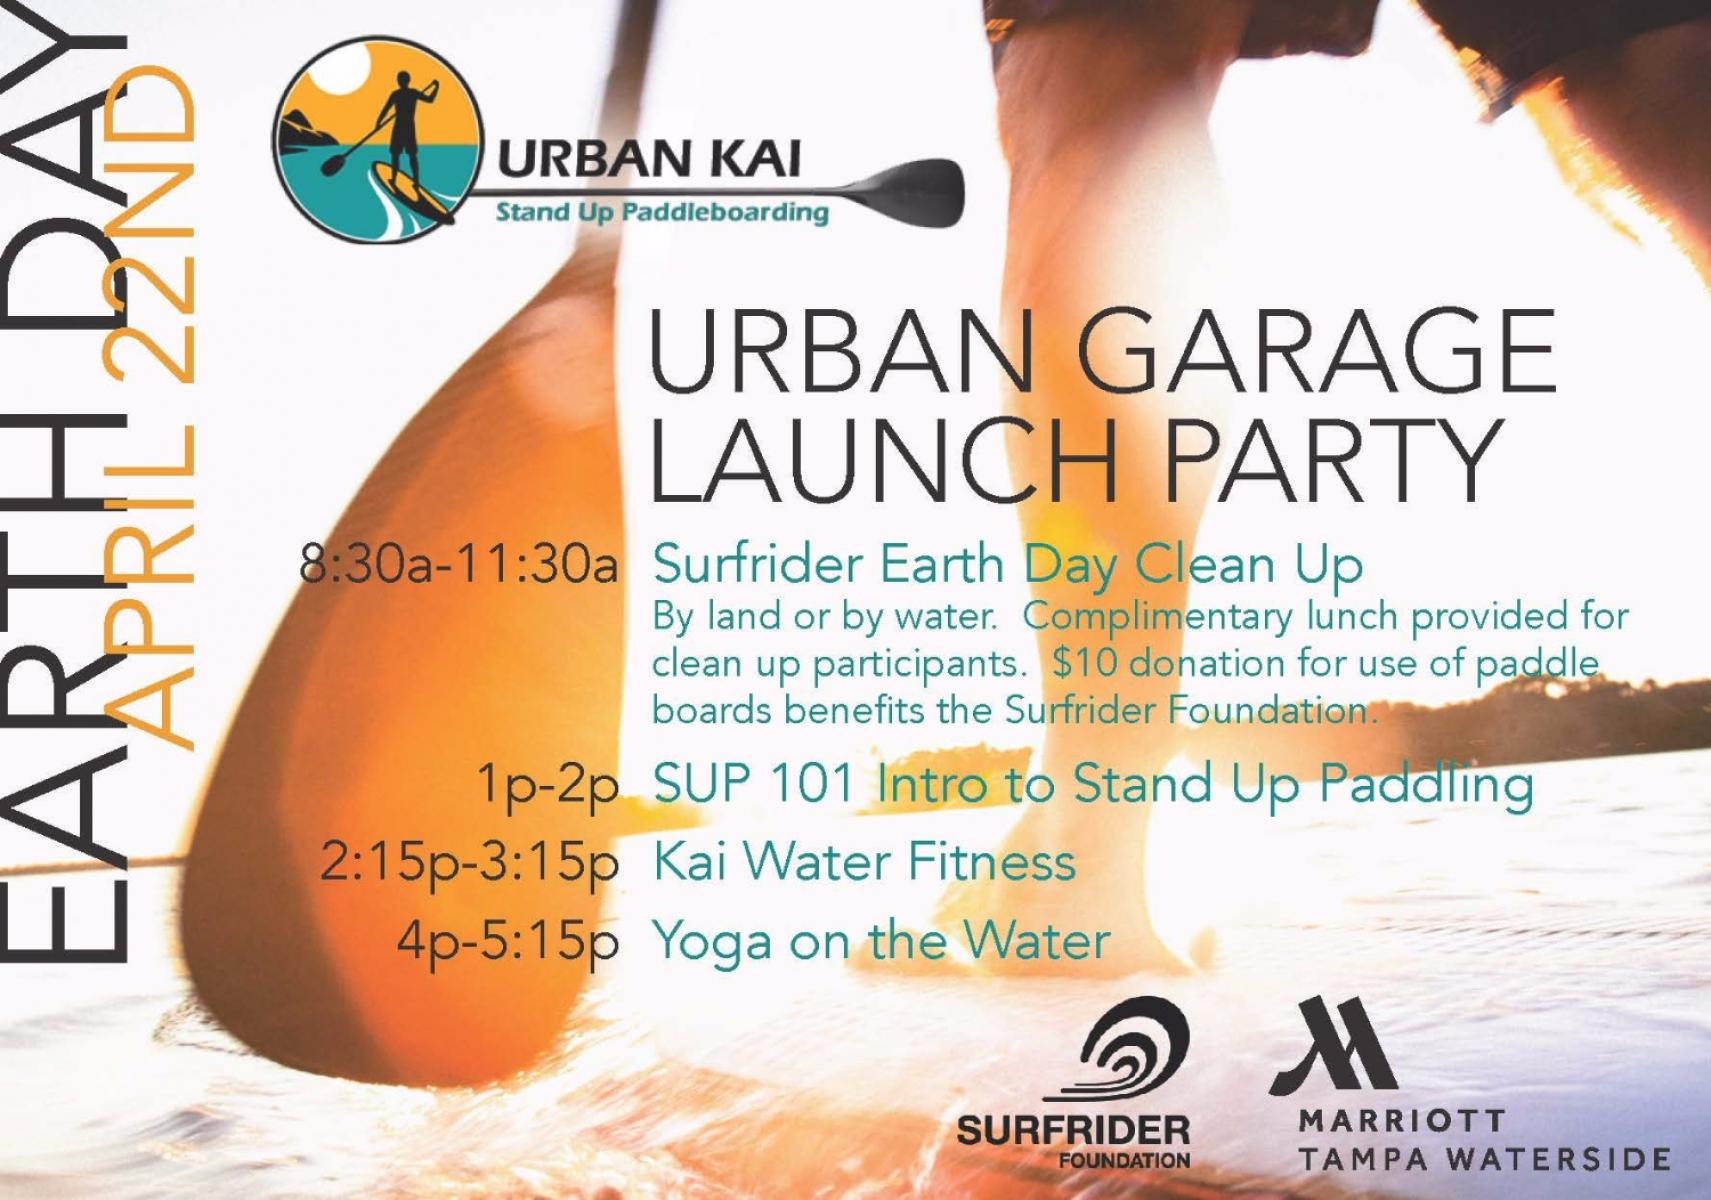 Earth Day Urban Kai Garage Launch Party